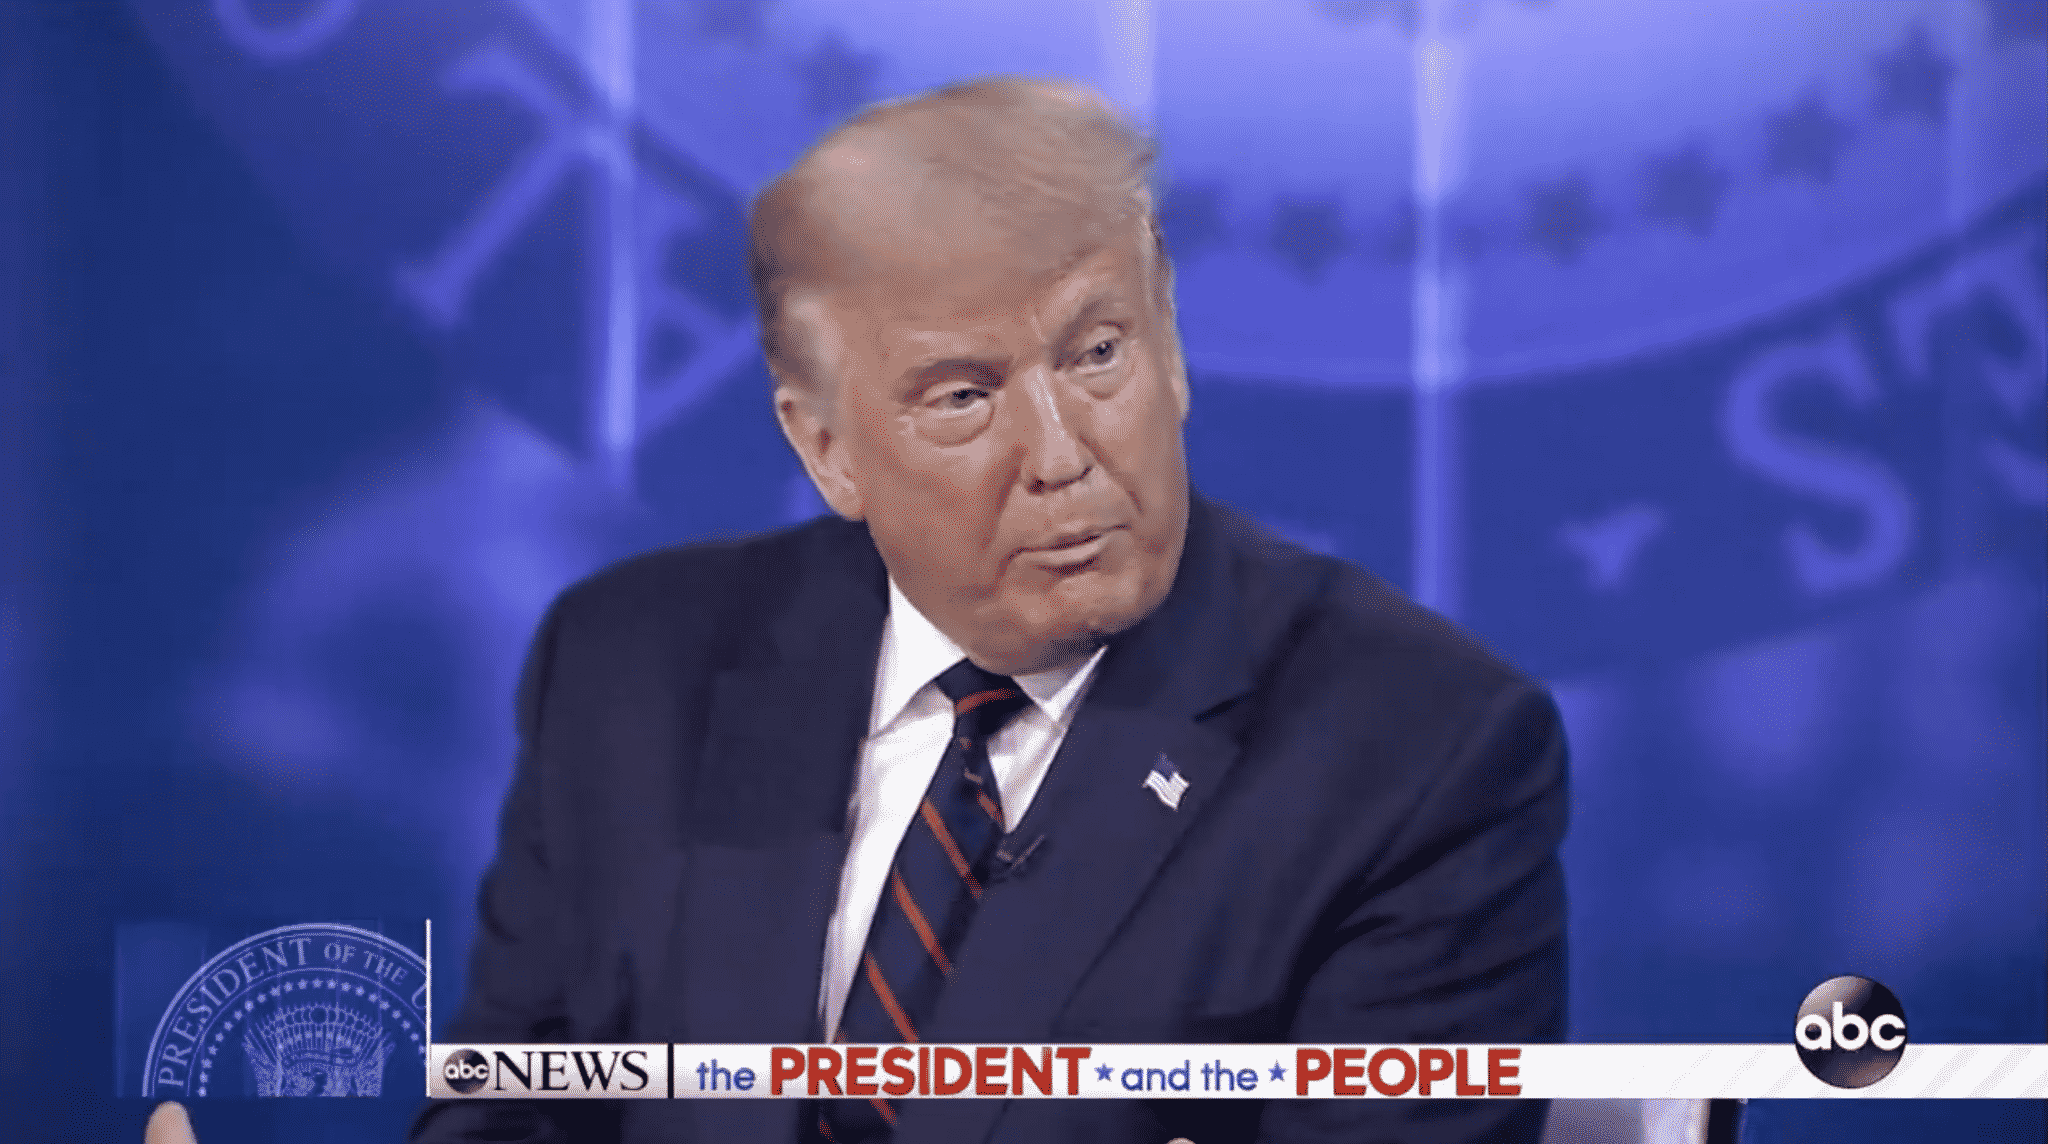 Trump Claims COVID-19 With 'Disappear' Even Without a Vaccine